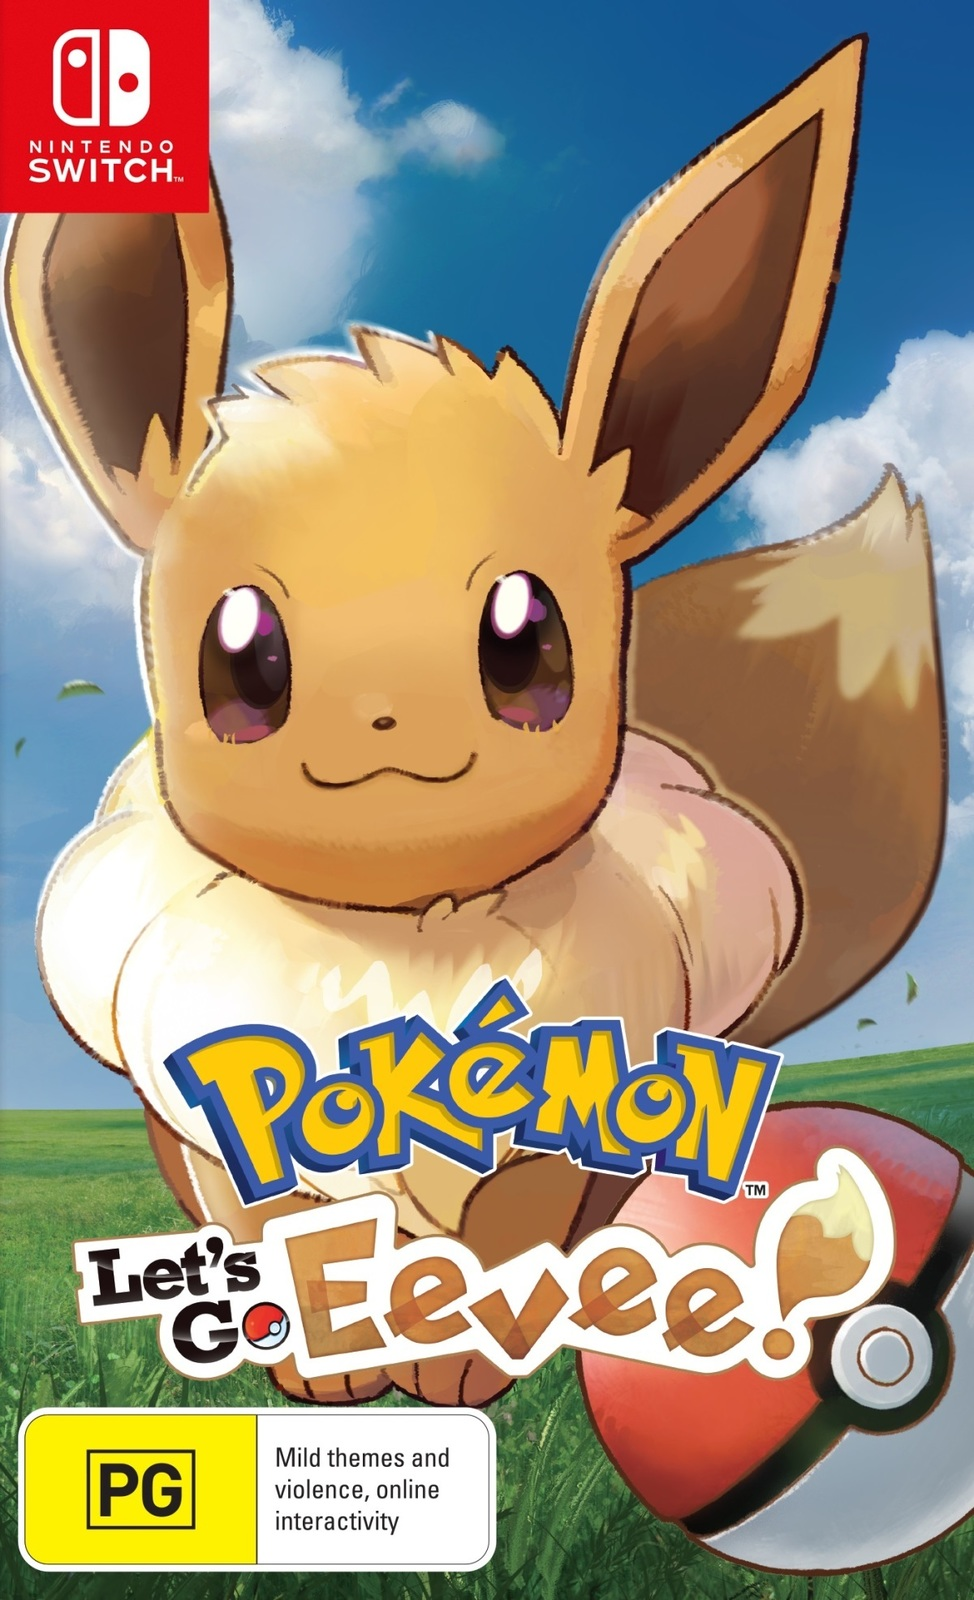 Pokemon Let's Go Eevee! for Switch image